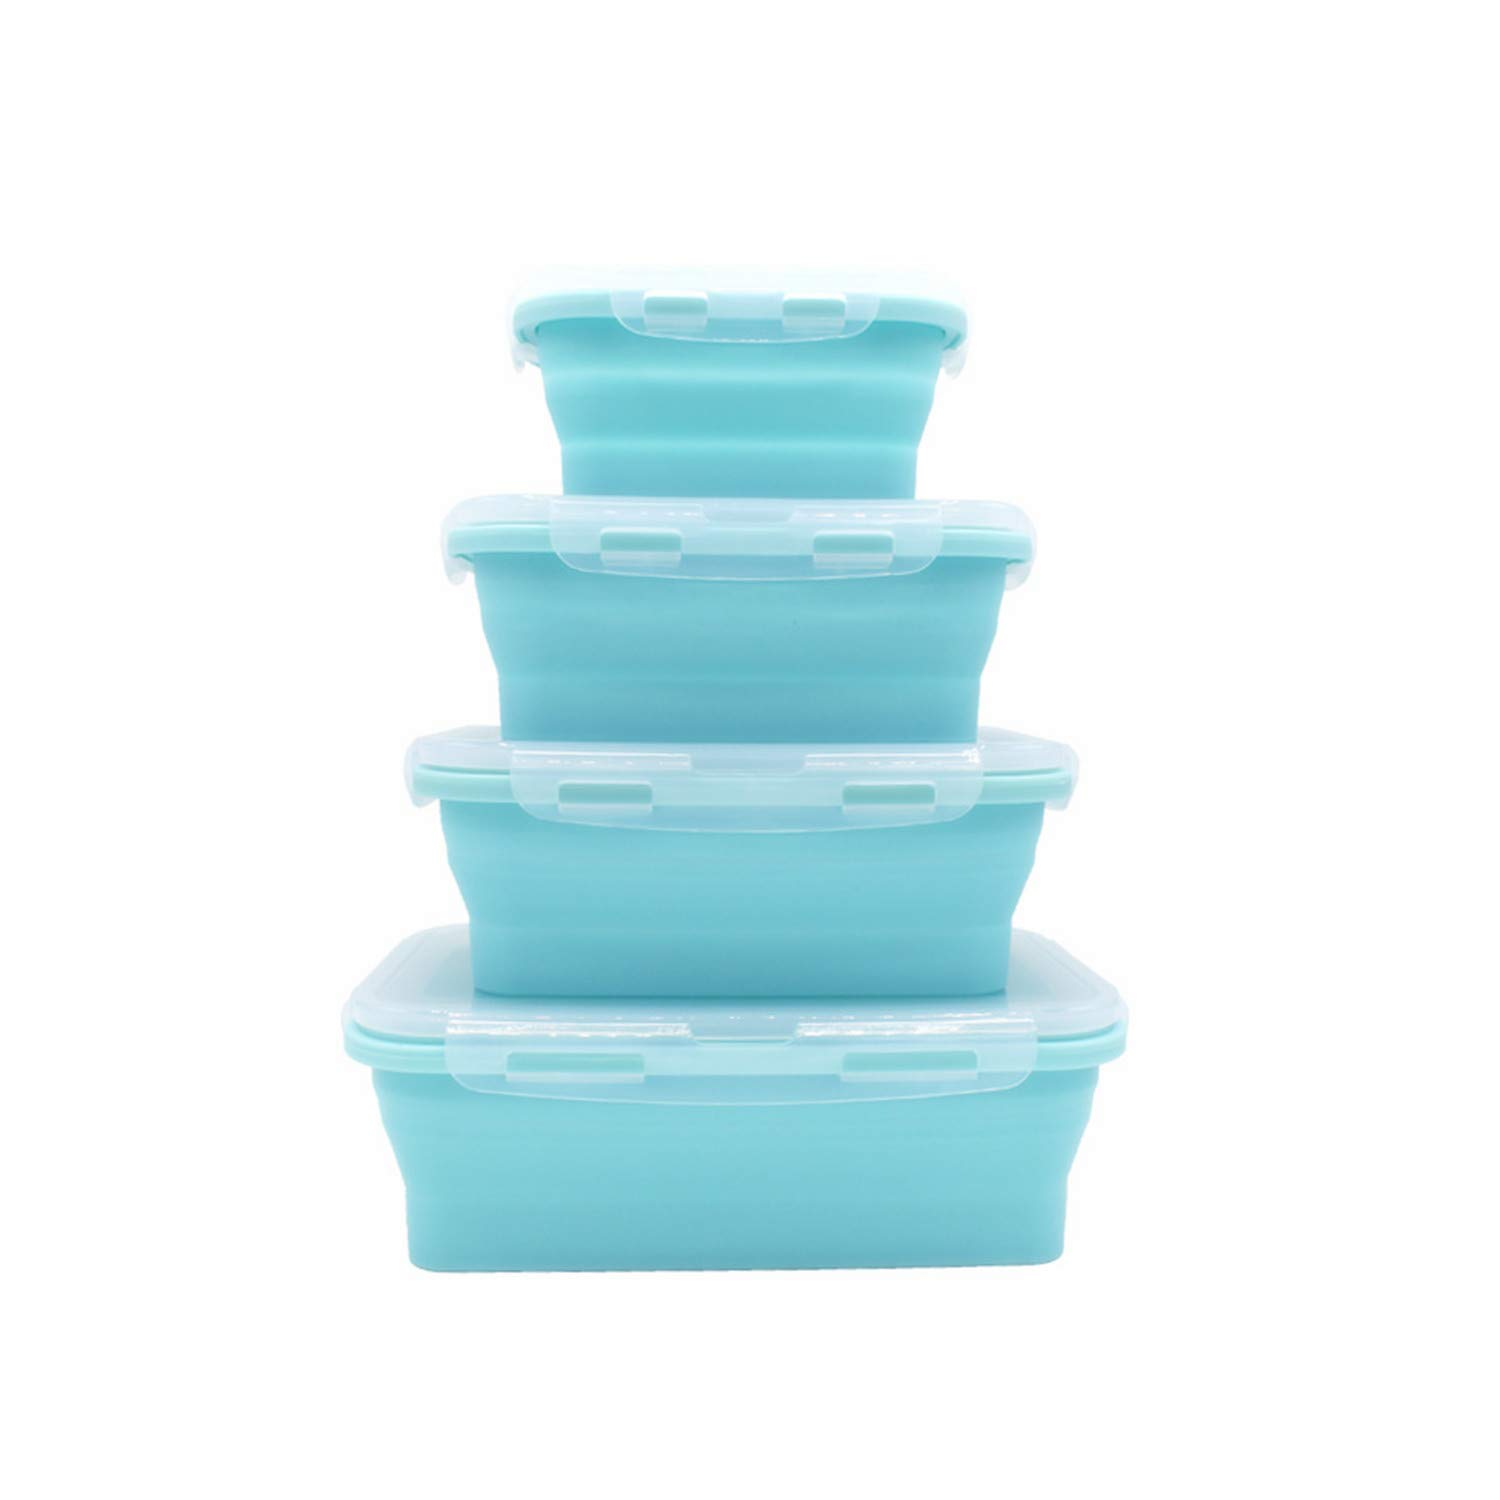 Collapsible Silicone Food Storage Containers - Round with Lids Prep Lunch Container - BPA Free, Freezer and Microwave Safe,Travel Food Storage Containers 4 Set (Rectangle Blue 4)